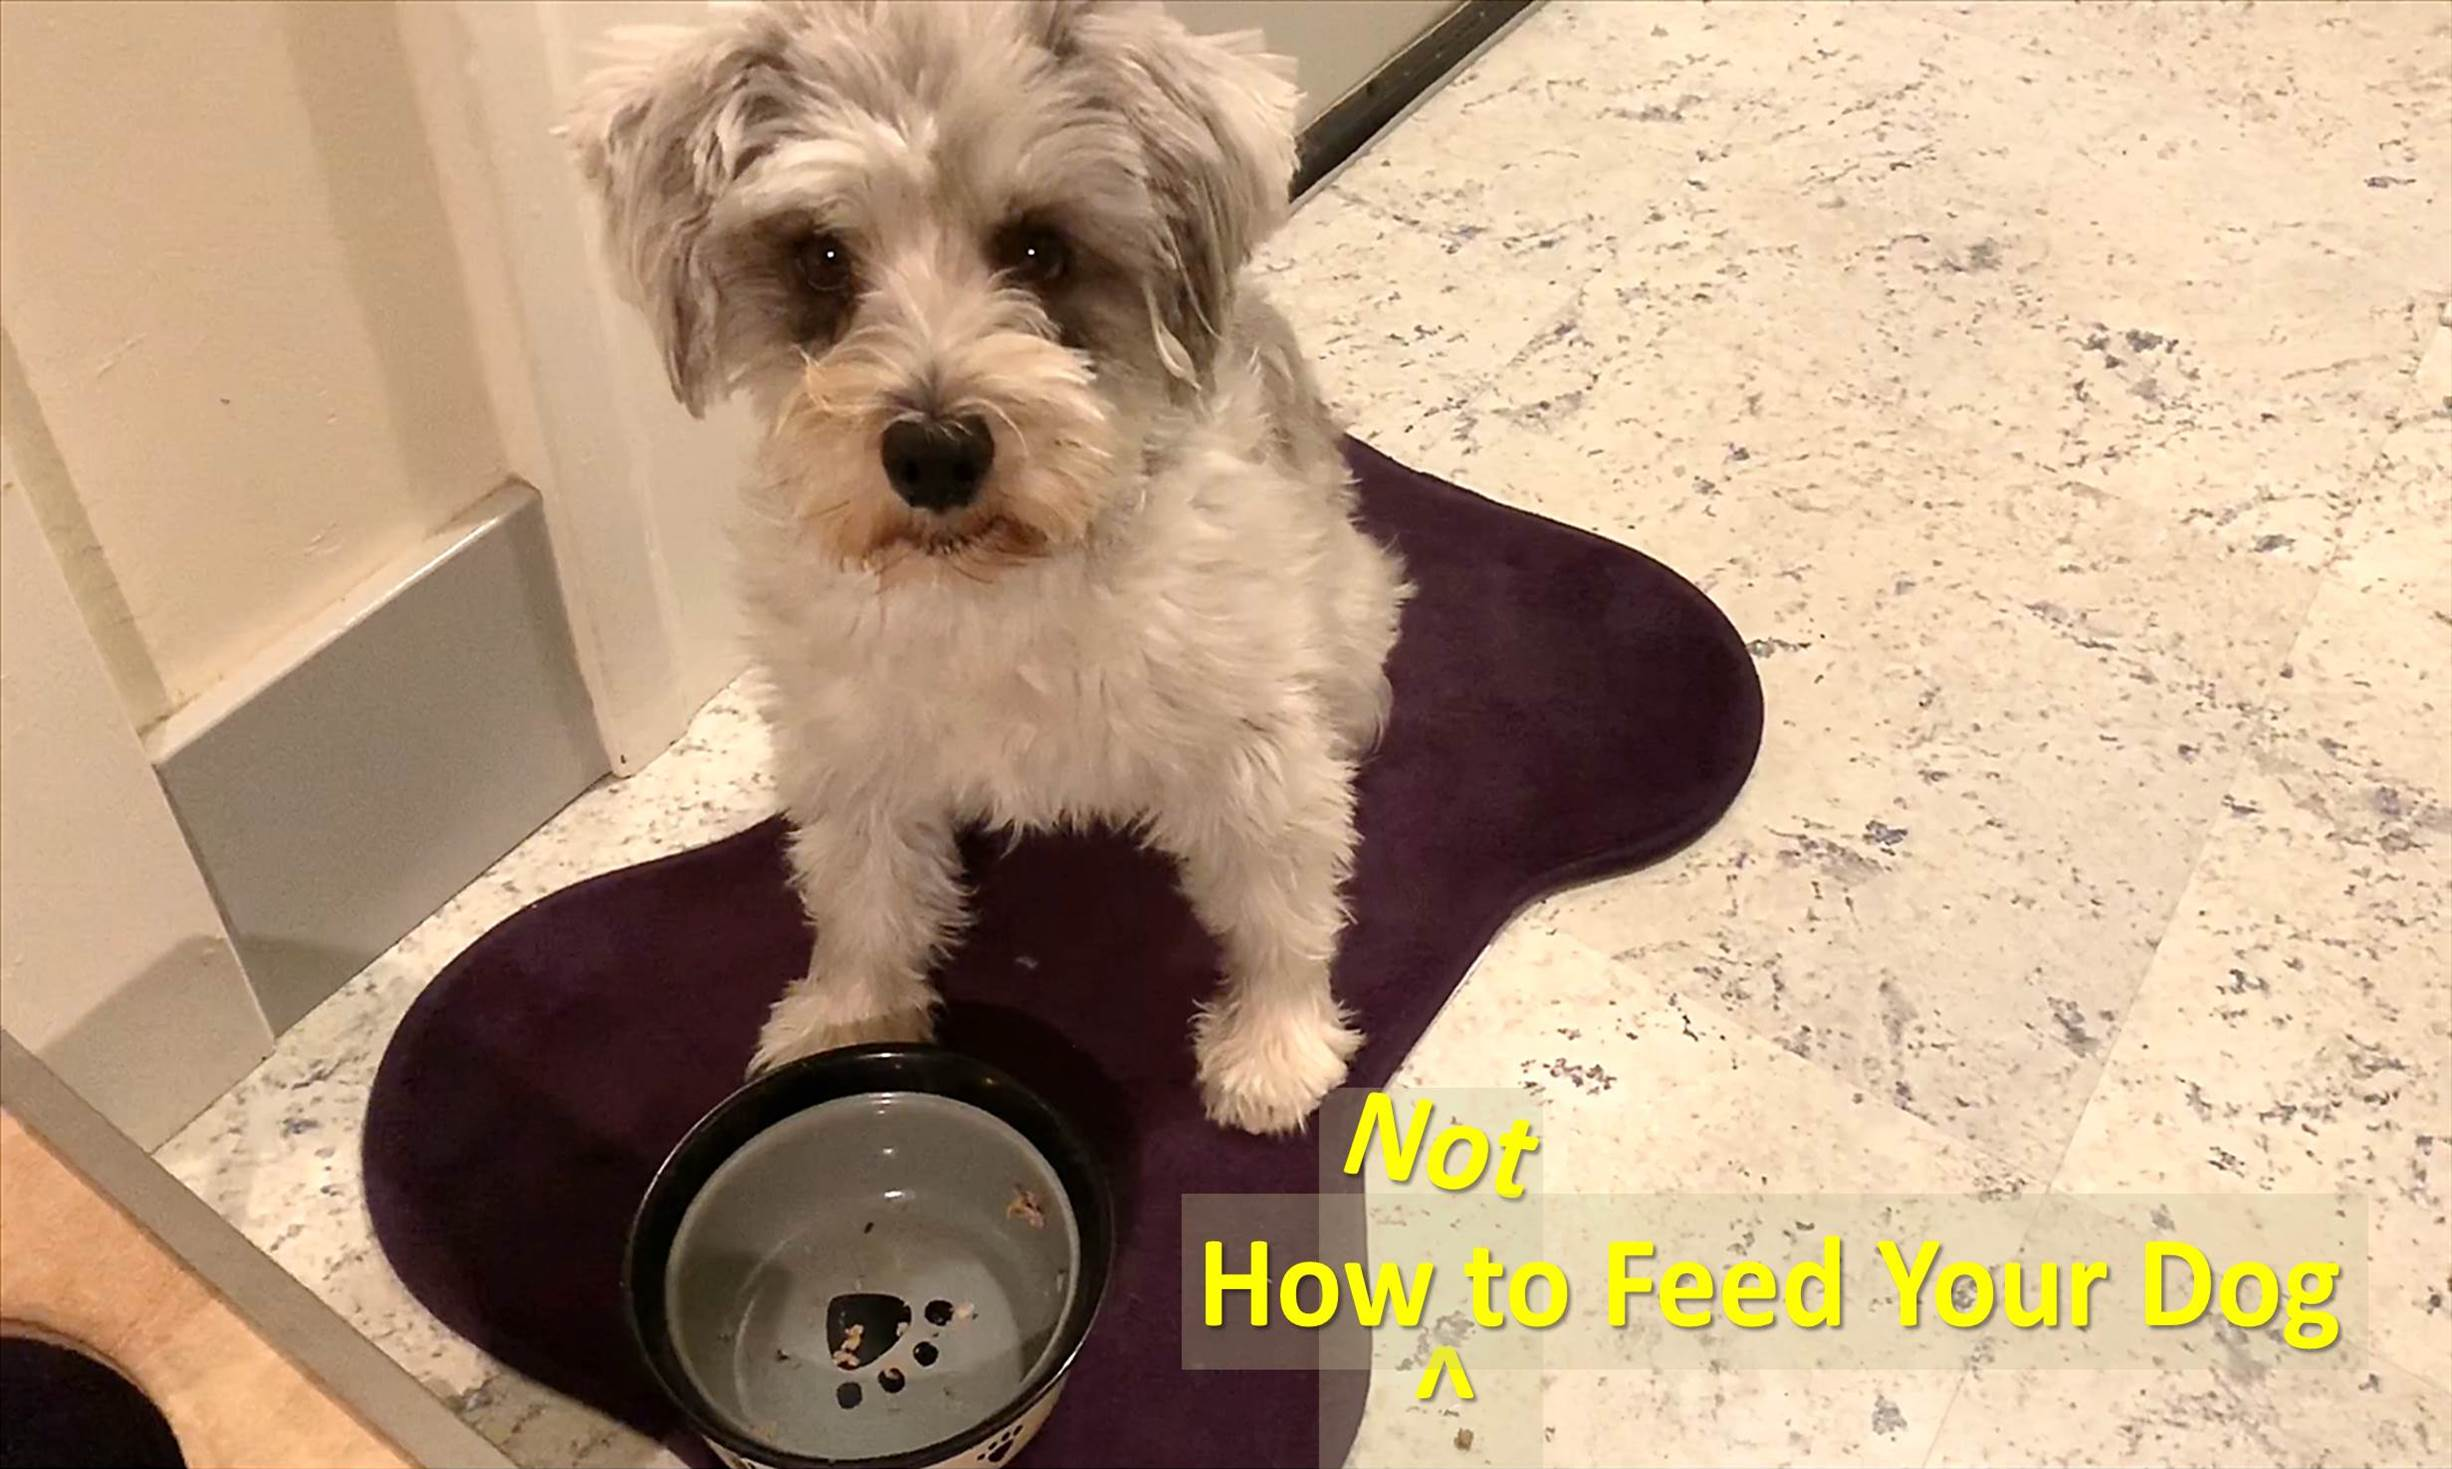 HOW TO FEED YOUR DOG